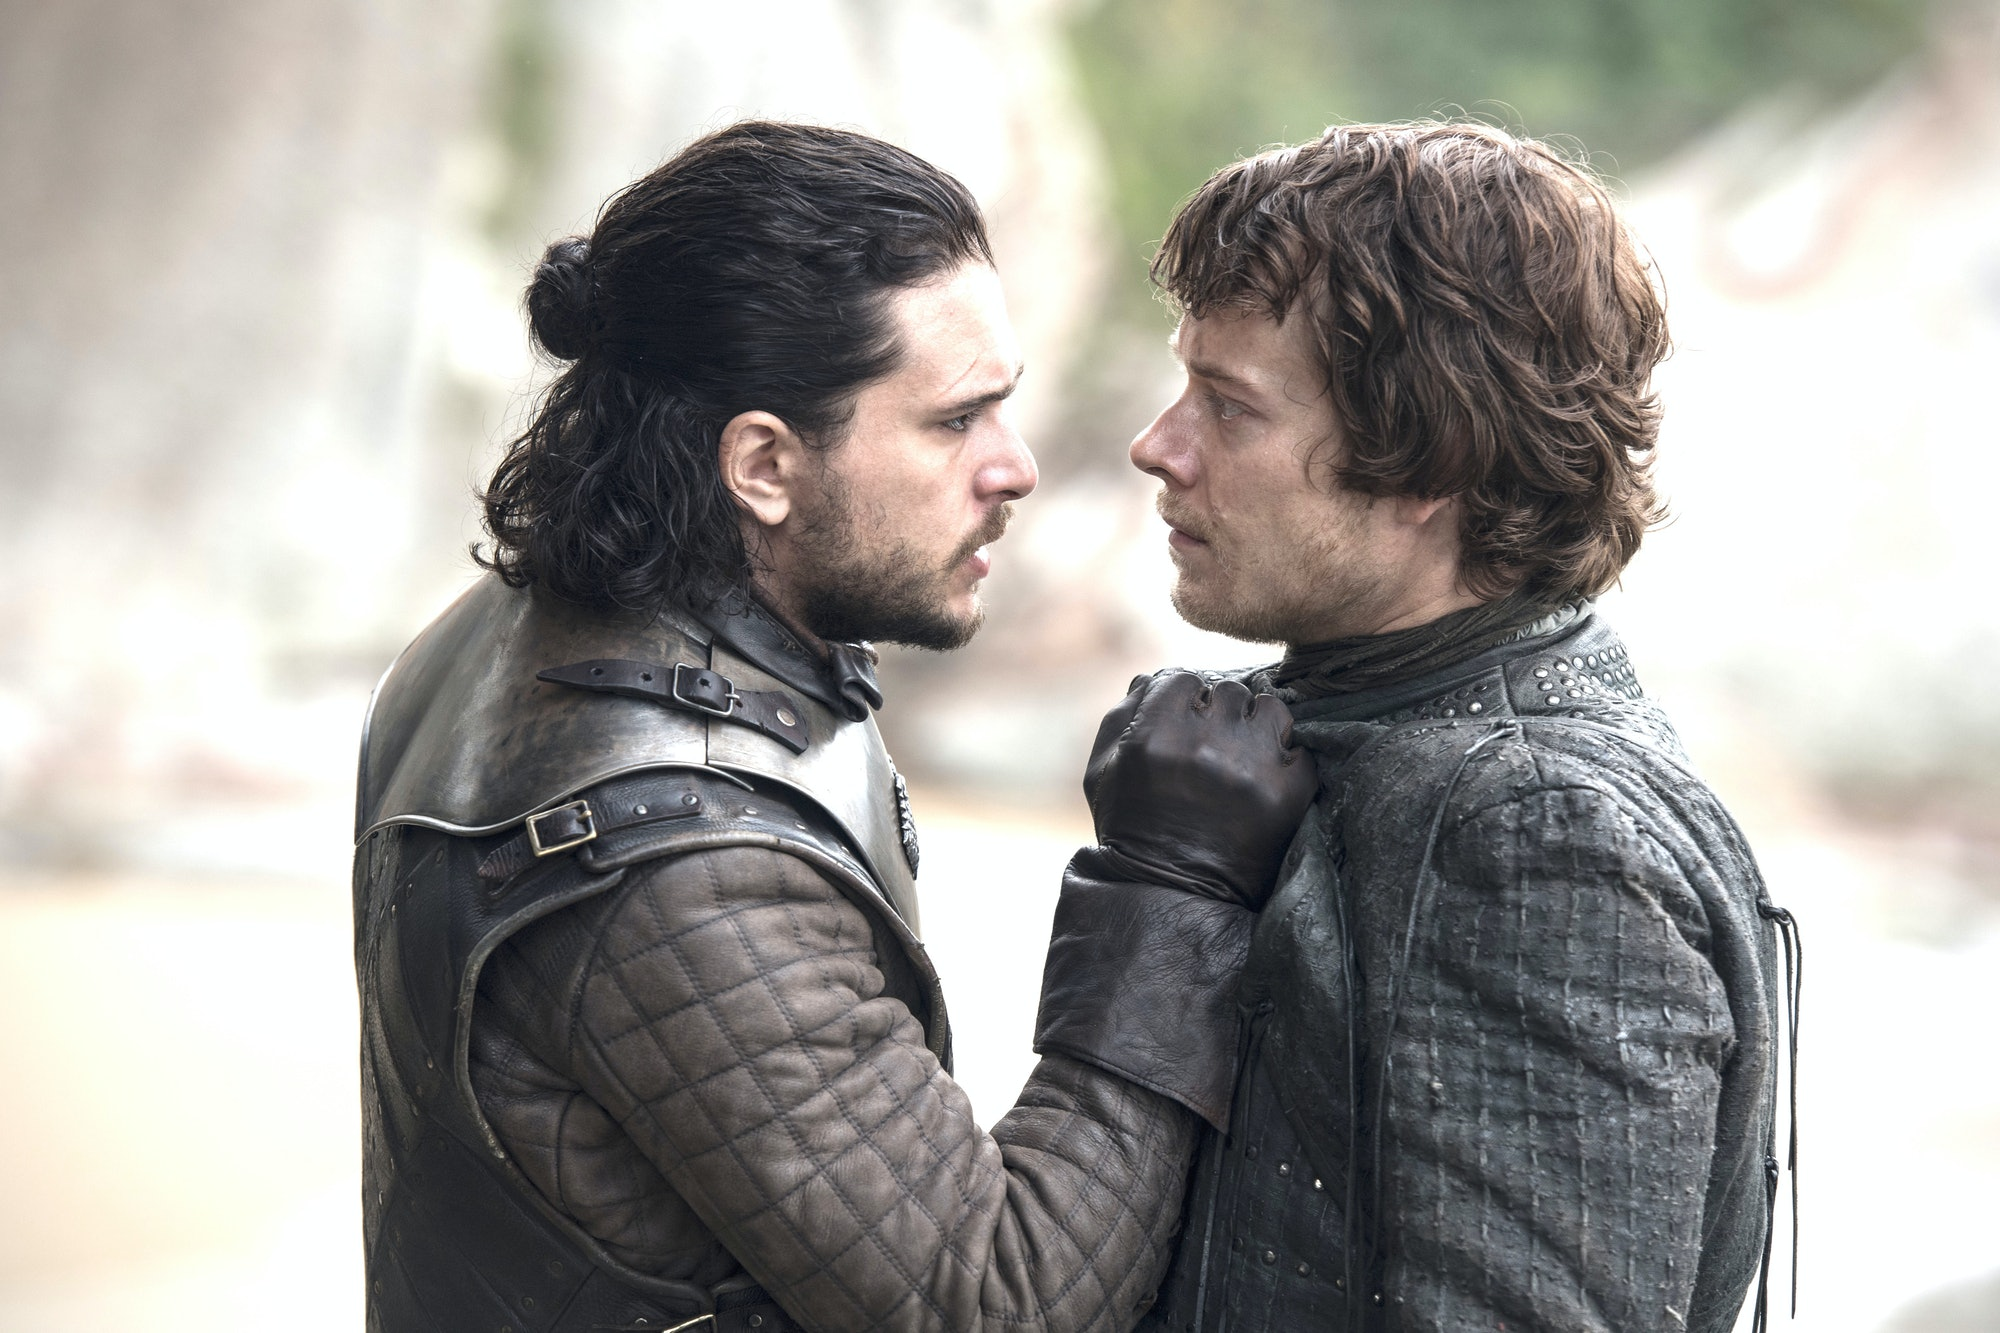 Jon and Theon in 'Game of Thrones'